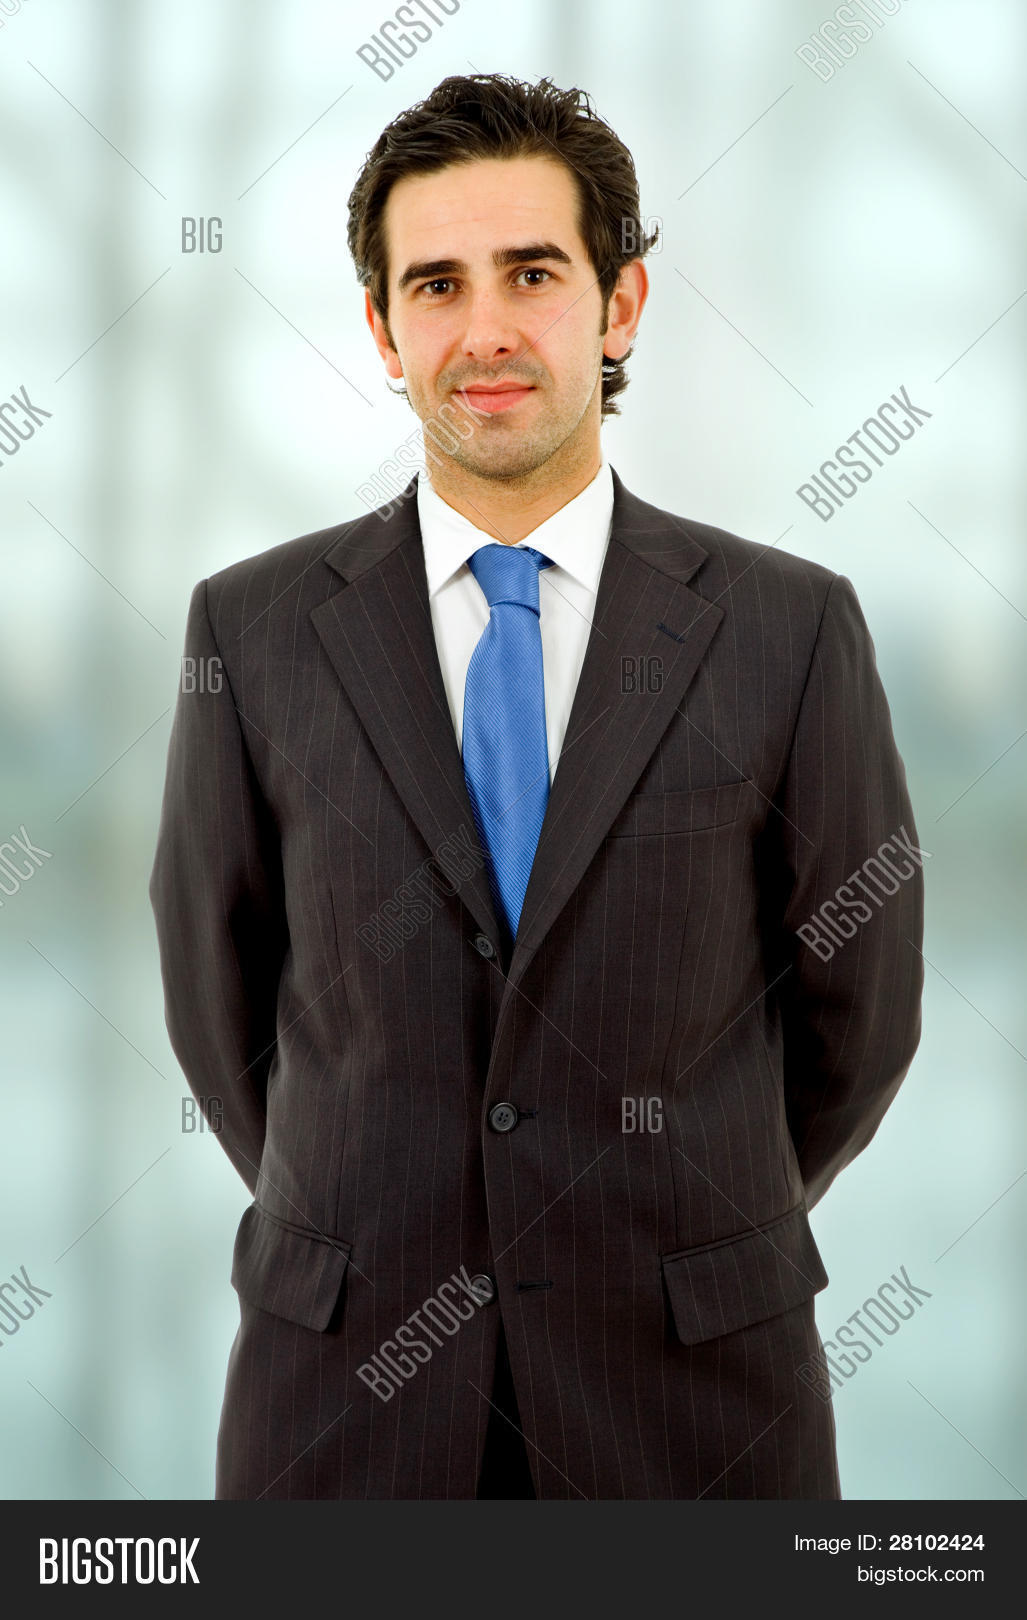 adult,alone,beginnings,business,businessman,business man,business men,calm,career,casual,caucasian,closeup,concentrate,confidence,confident,contact,contentment,corporate,employee,executive,face,guy,hair,handsome,happy,happy man,head,human,laugh,look,male,man,man portrait,mouth,one,pensive,planning,portrait,positive,single,smiling,staring,success,thinking,thoughtful,tie,vision,white,wondering,worker,young,youth